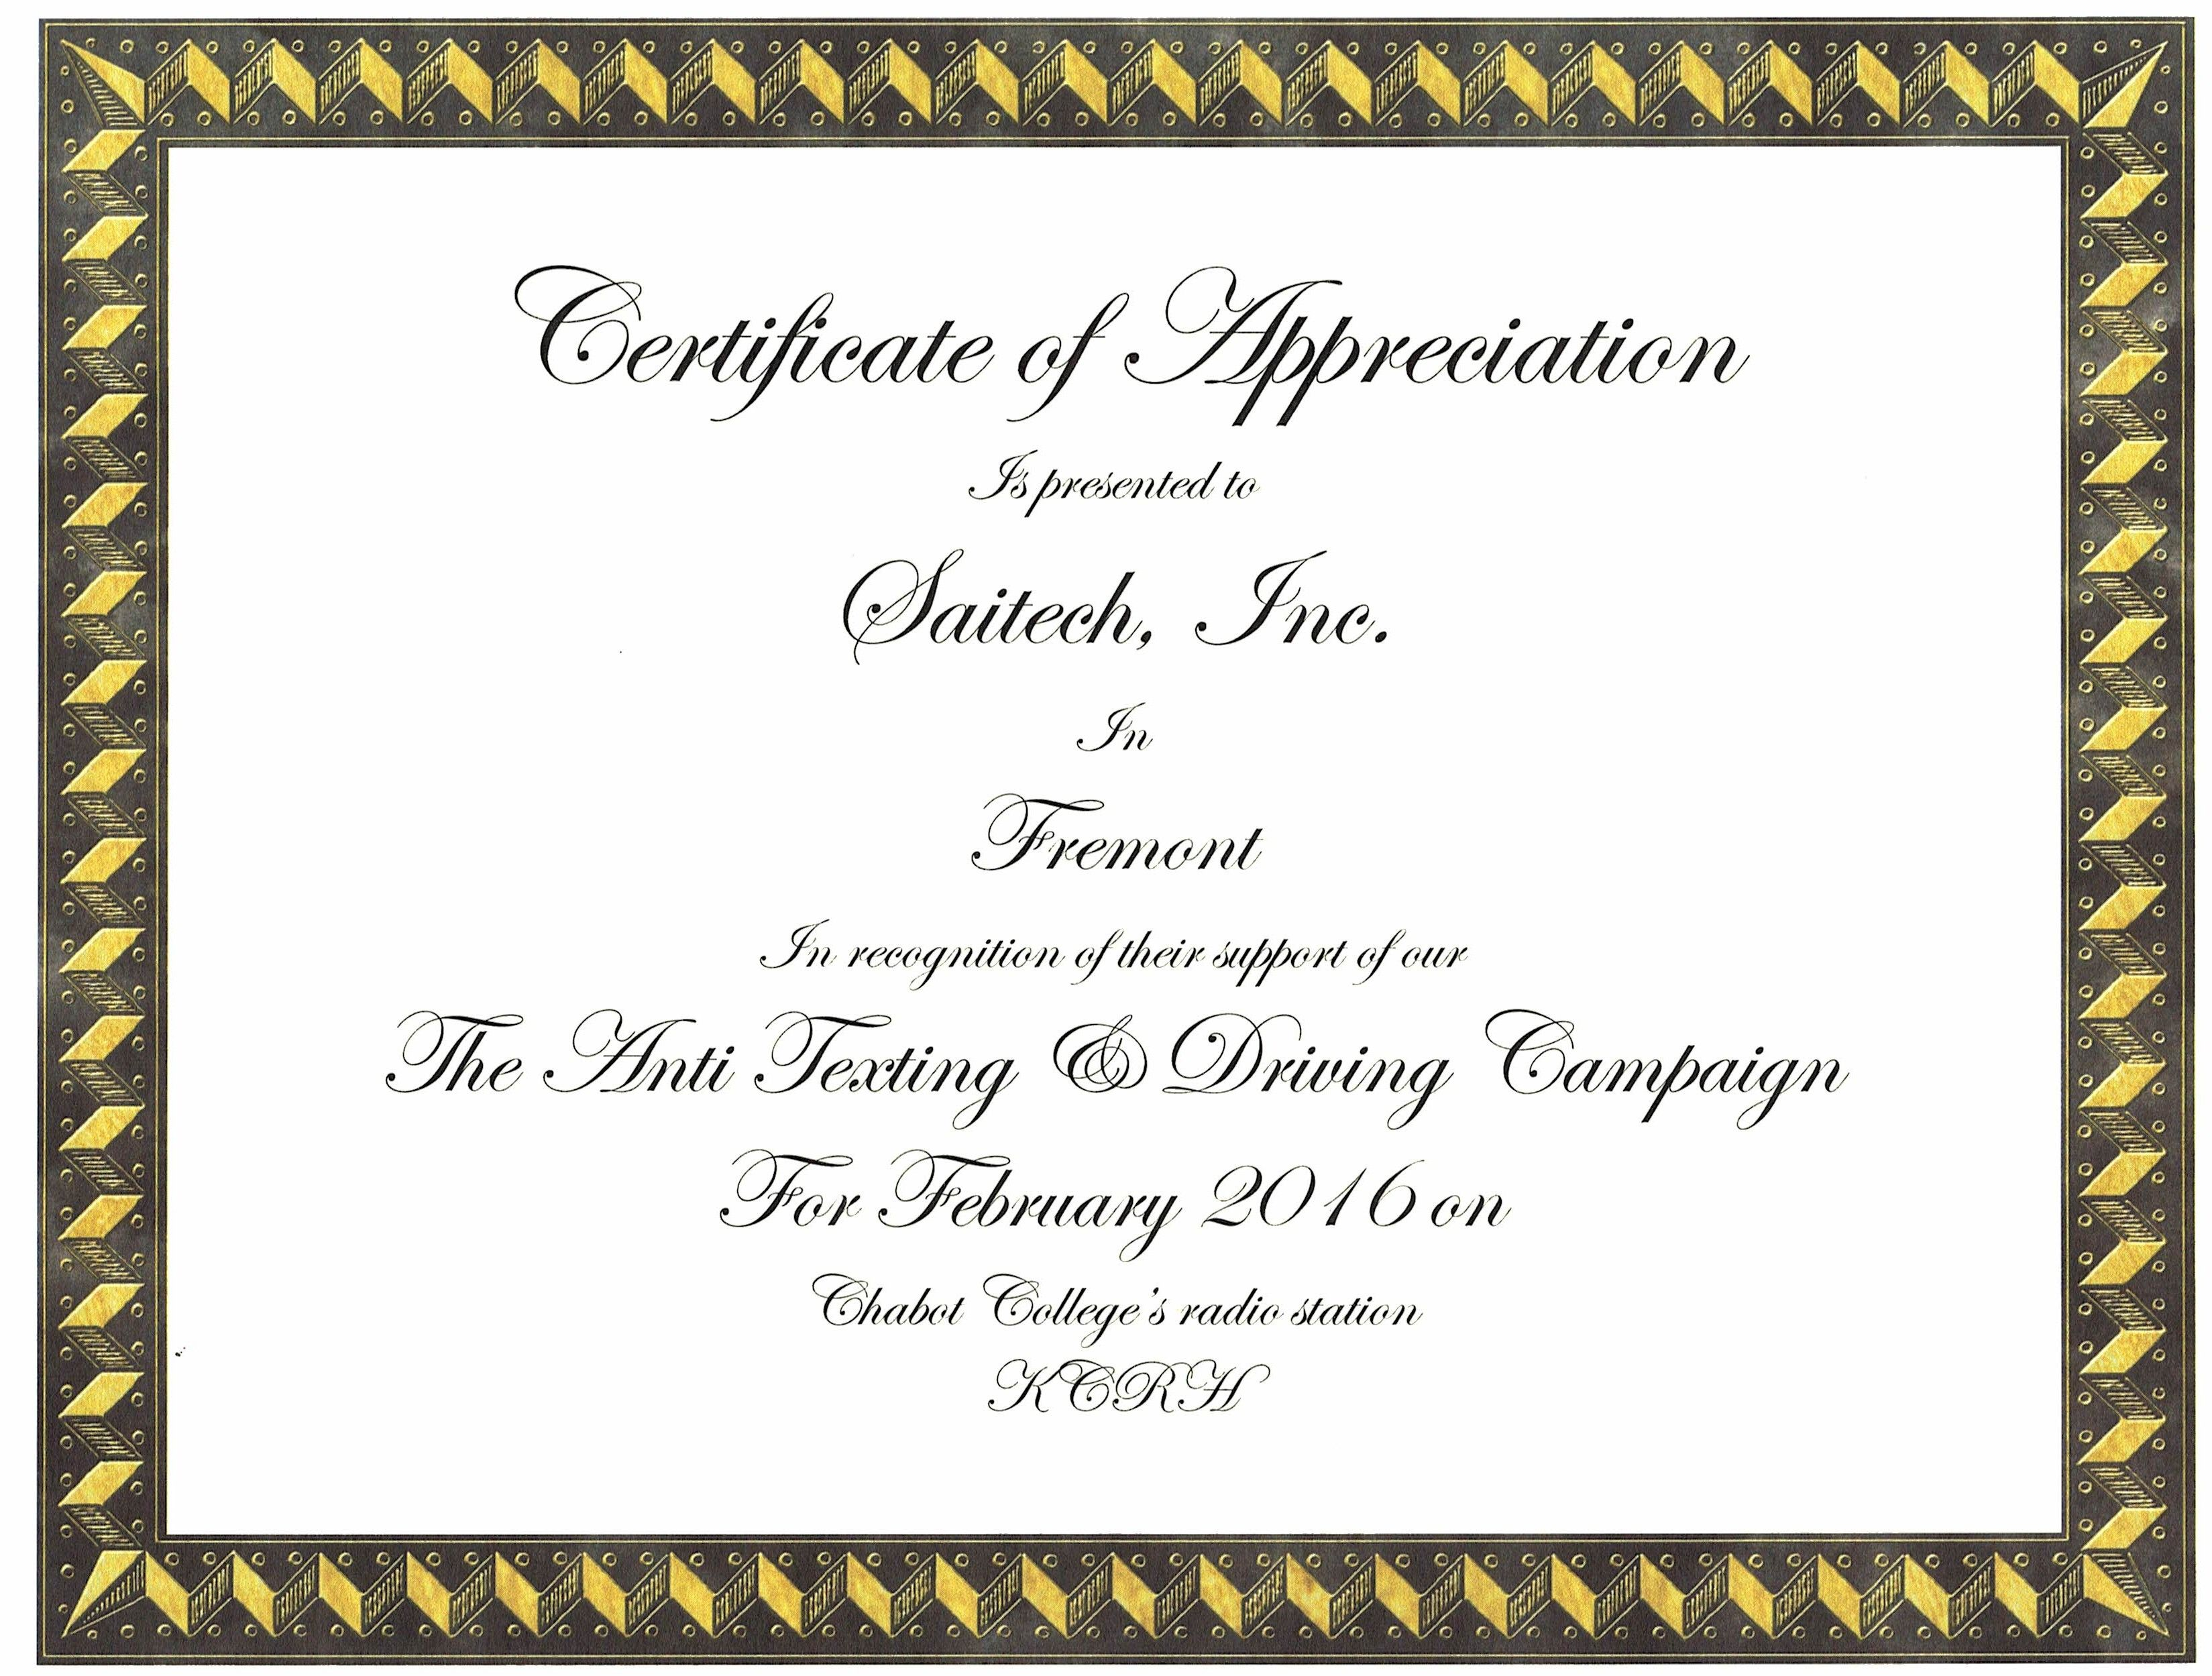 Certificate of appreciation awarded for support against texting anti texting yelopaper Images